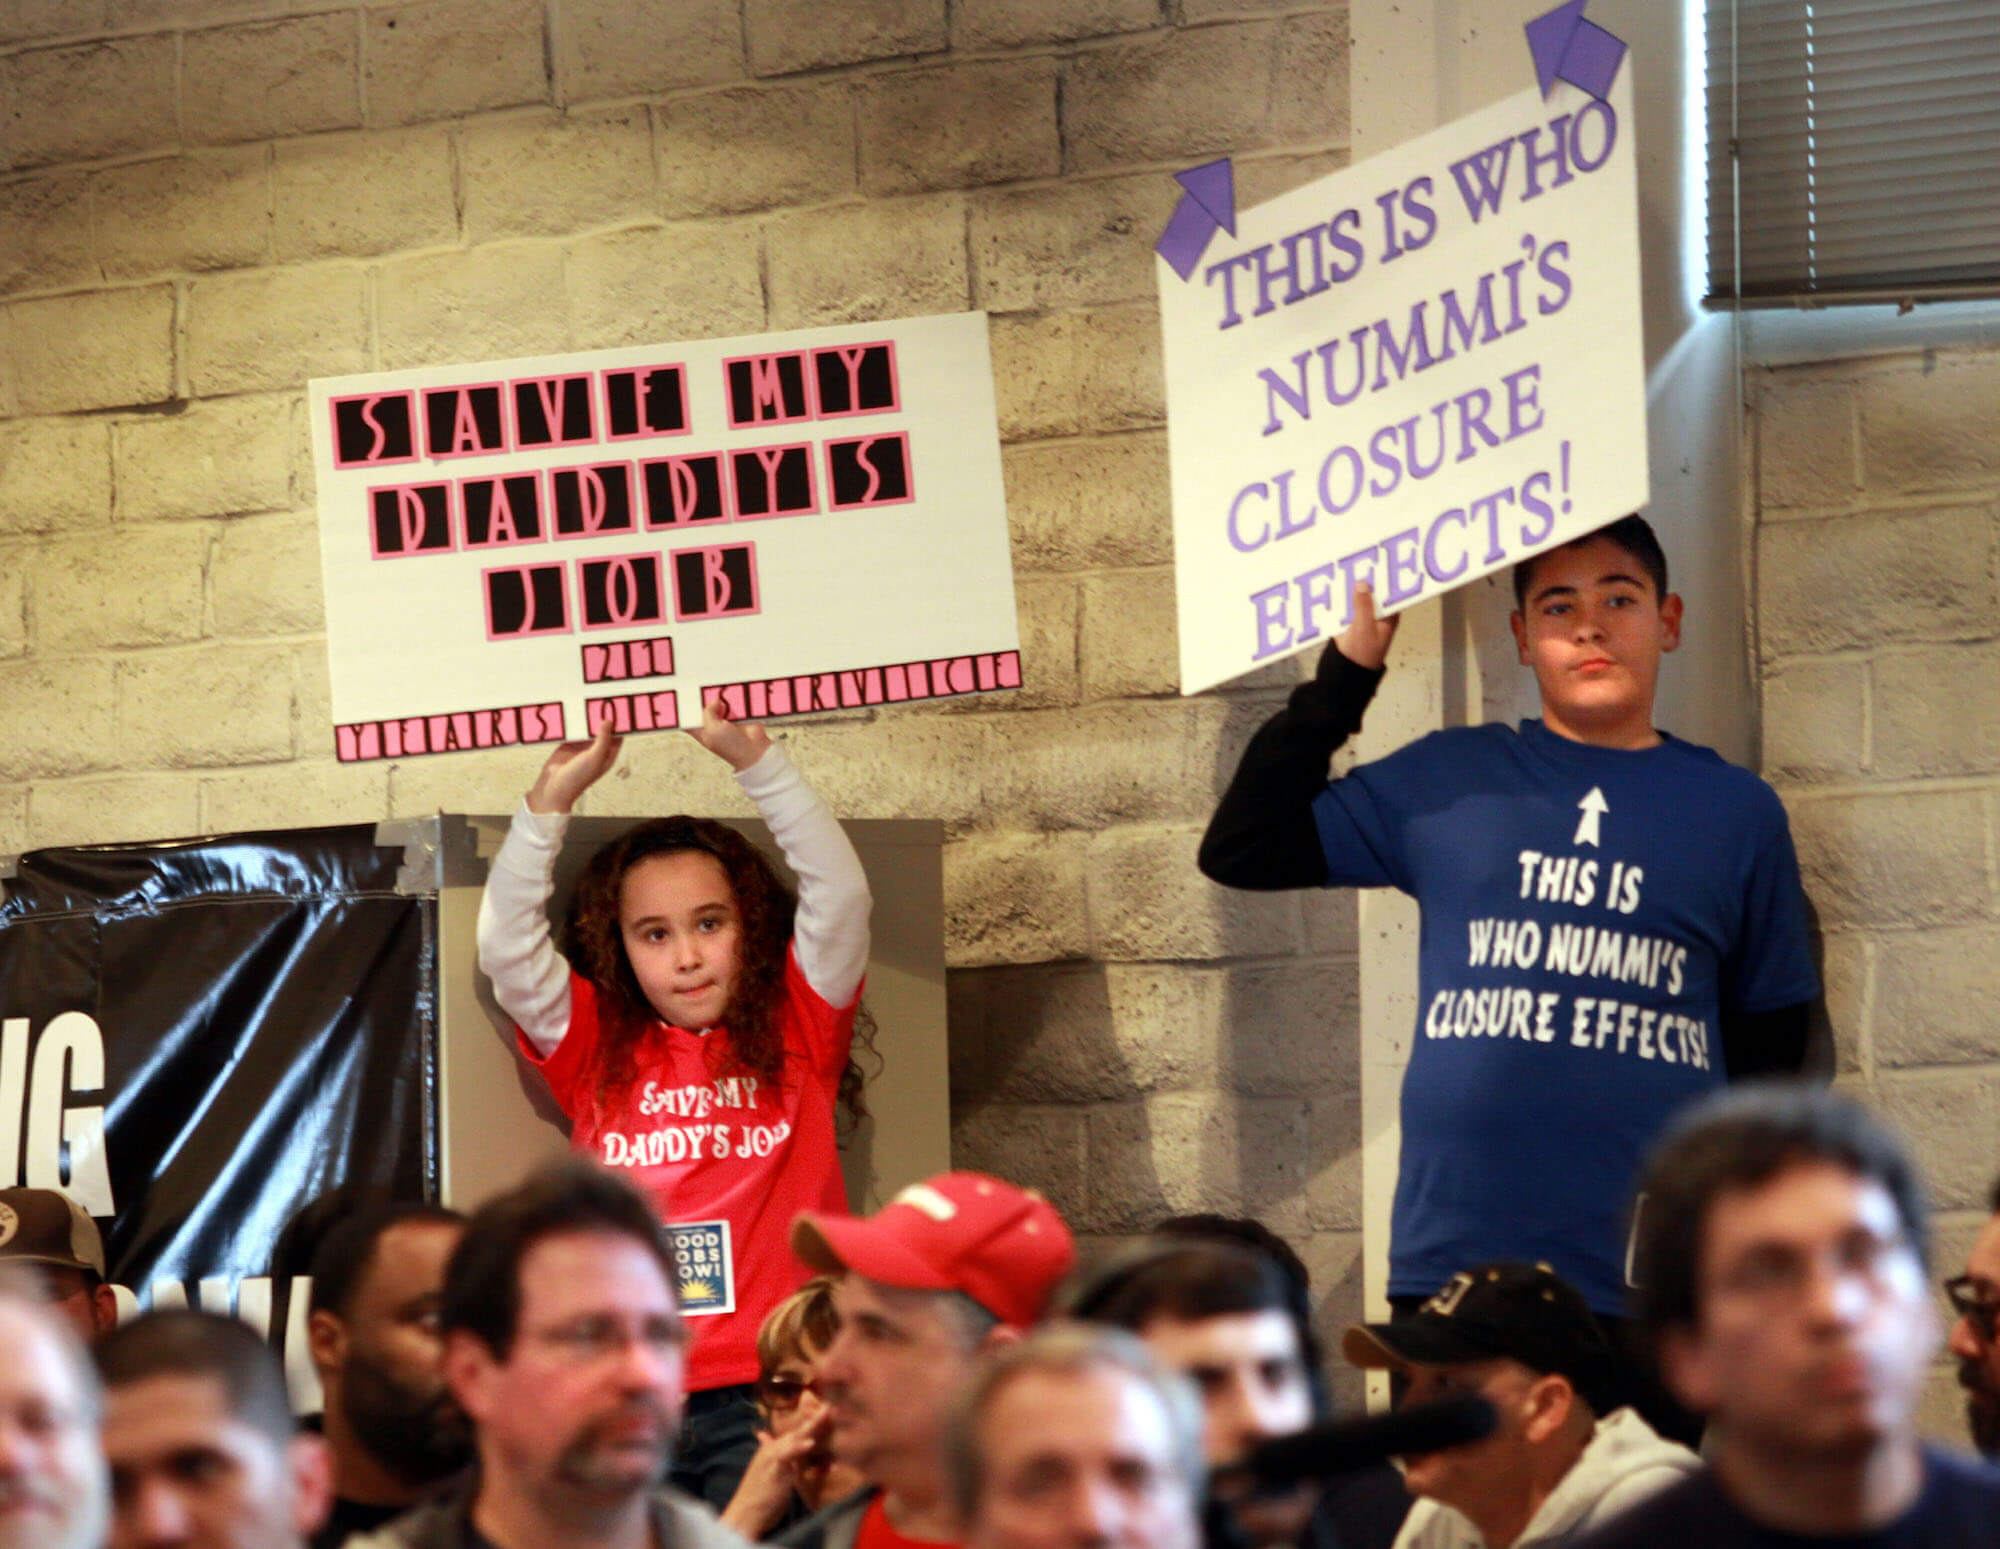 Marissa Perez and her brother Austin hold up signs for their father's job during a rally at the United Auto Workers Hall that hoped to persuade Toyota not to close its New United Motor Manufacturing Inc. automobile assembly plant, Friday, Feb. 12, 2010 in Fremont, Calif. (AP Photo/Dino Vournas)